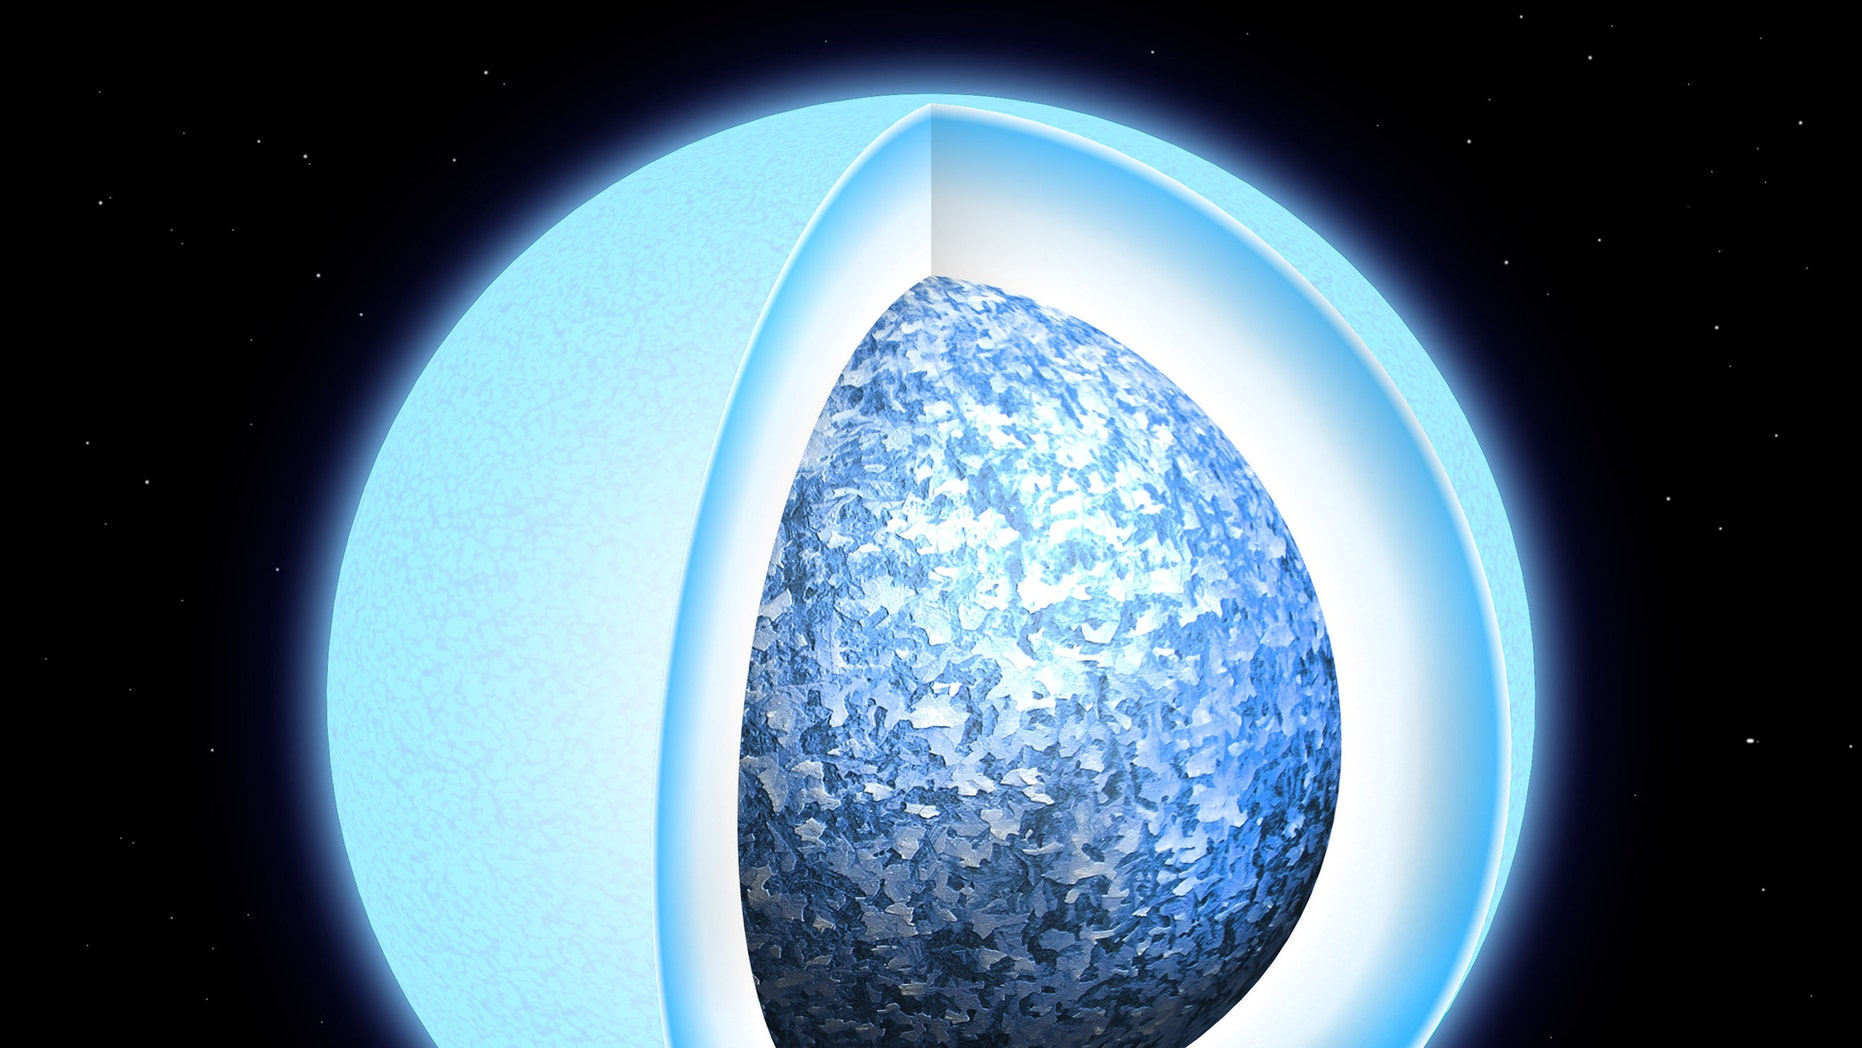 Astronomers observe white dwarf stars solidifying into crystals